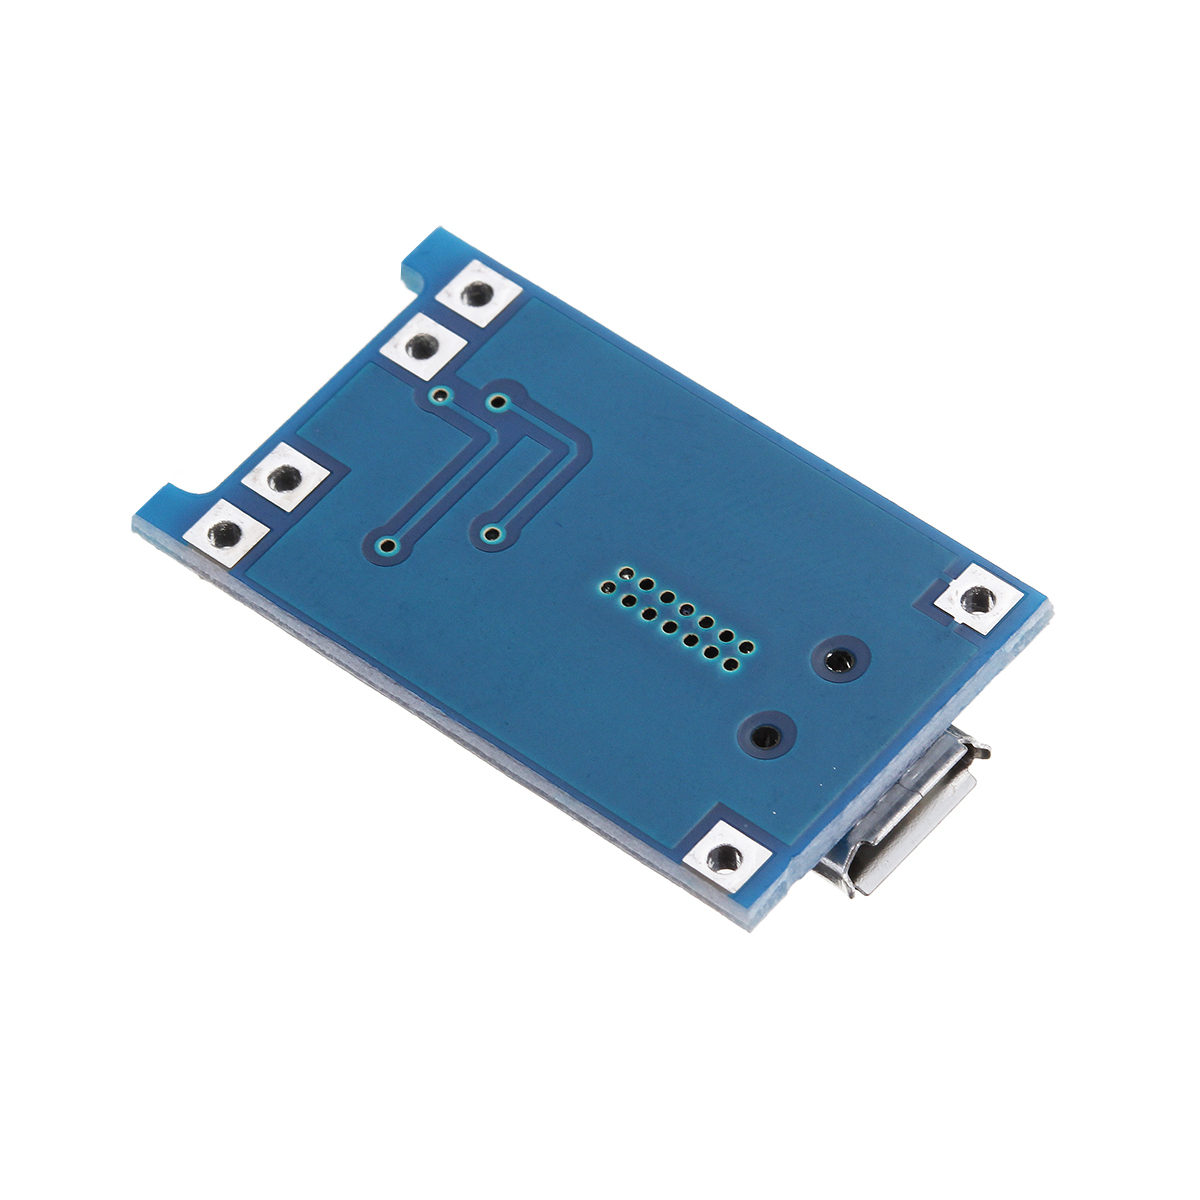 2Pcs TP4056 Micro USB 5V 1A Lithium Battery Charging Protection Board TE585 Lipo Charger Module